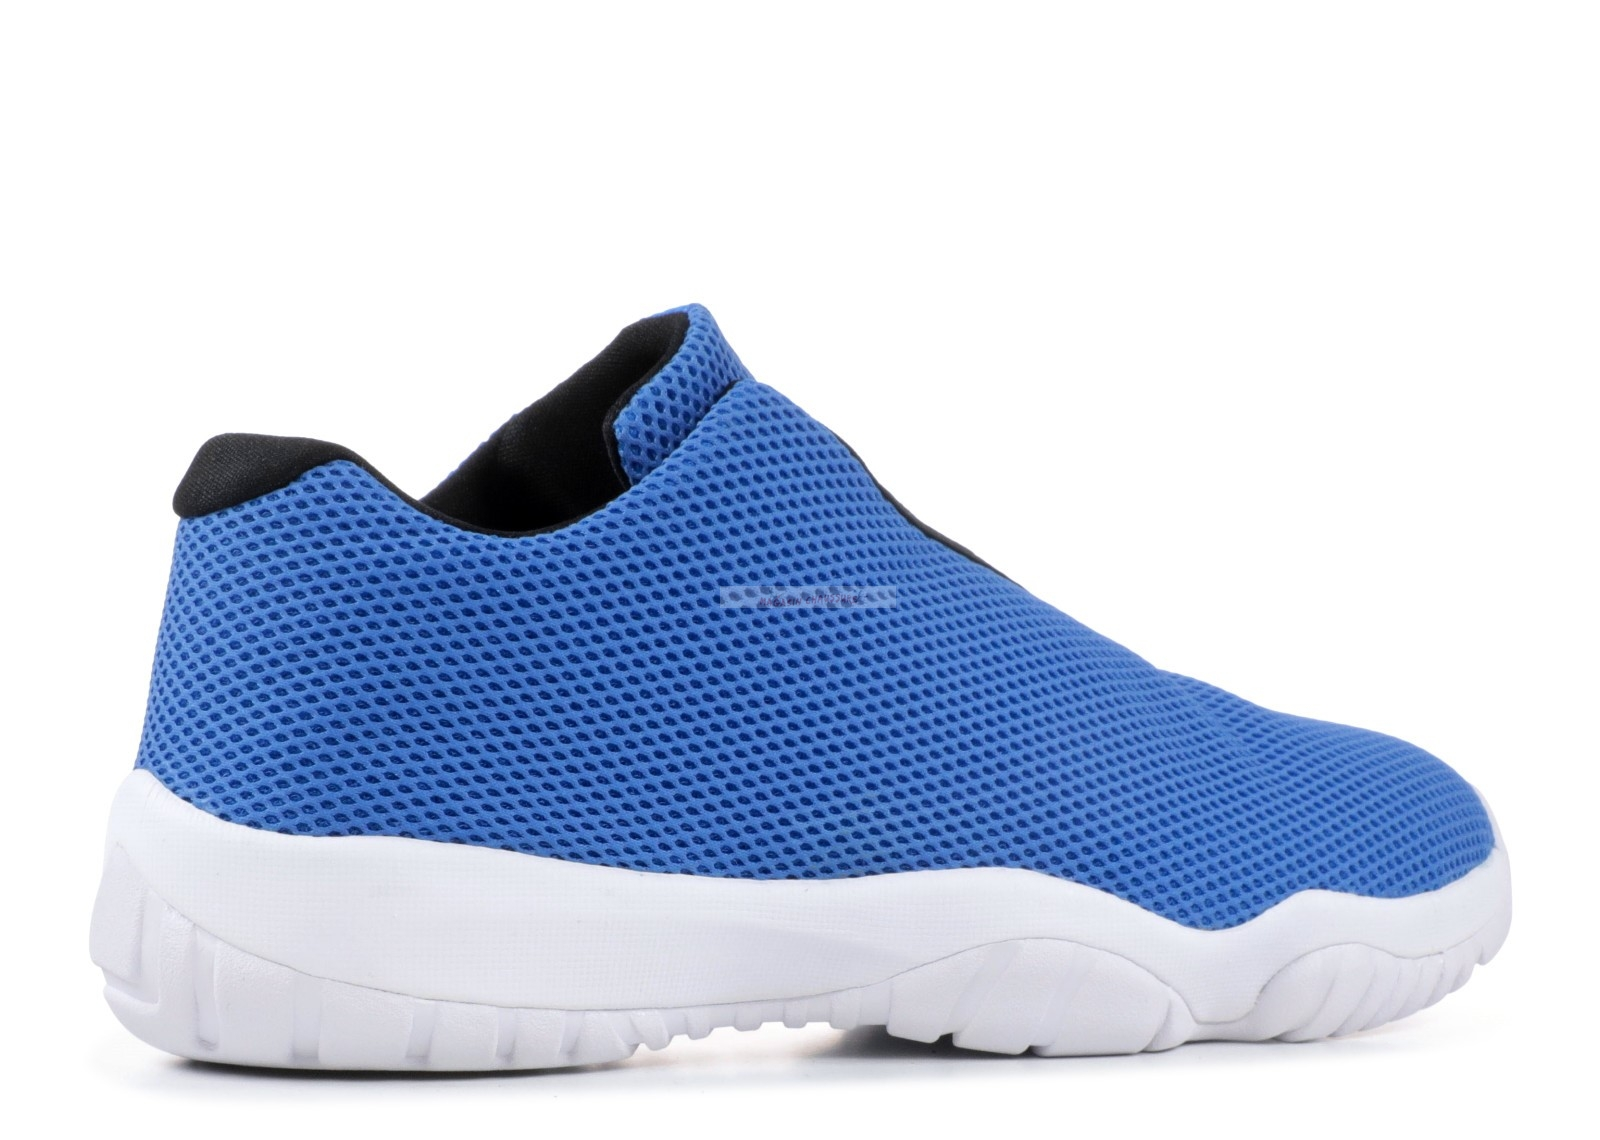 Air Jordan Future Low Bleu Blanc 2 (718948-400) Chaussure de Basket